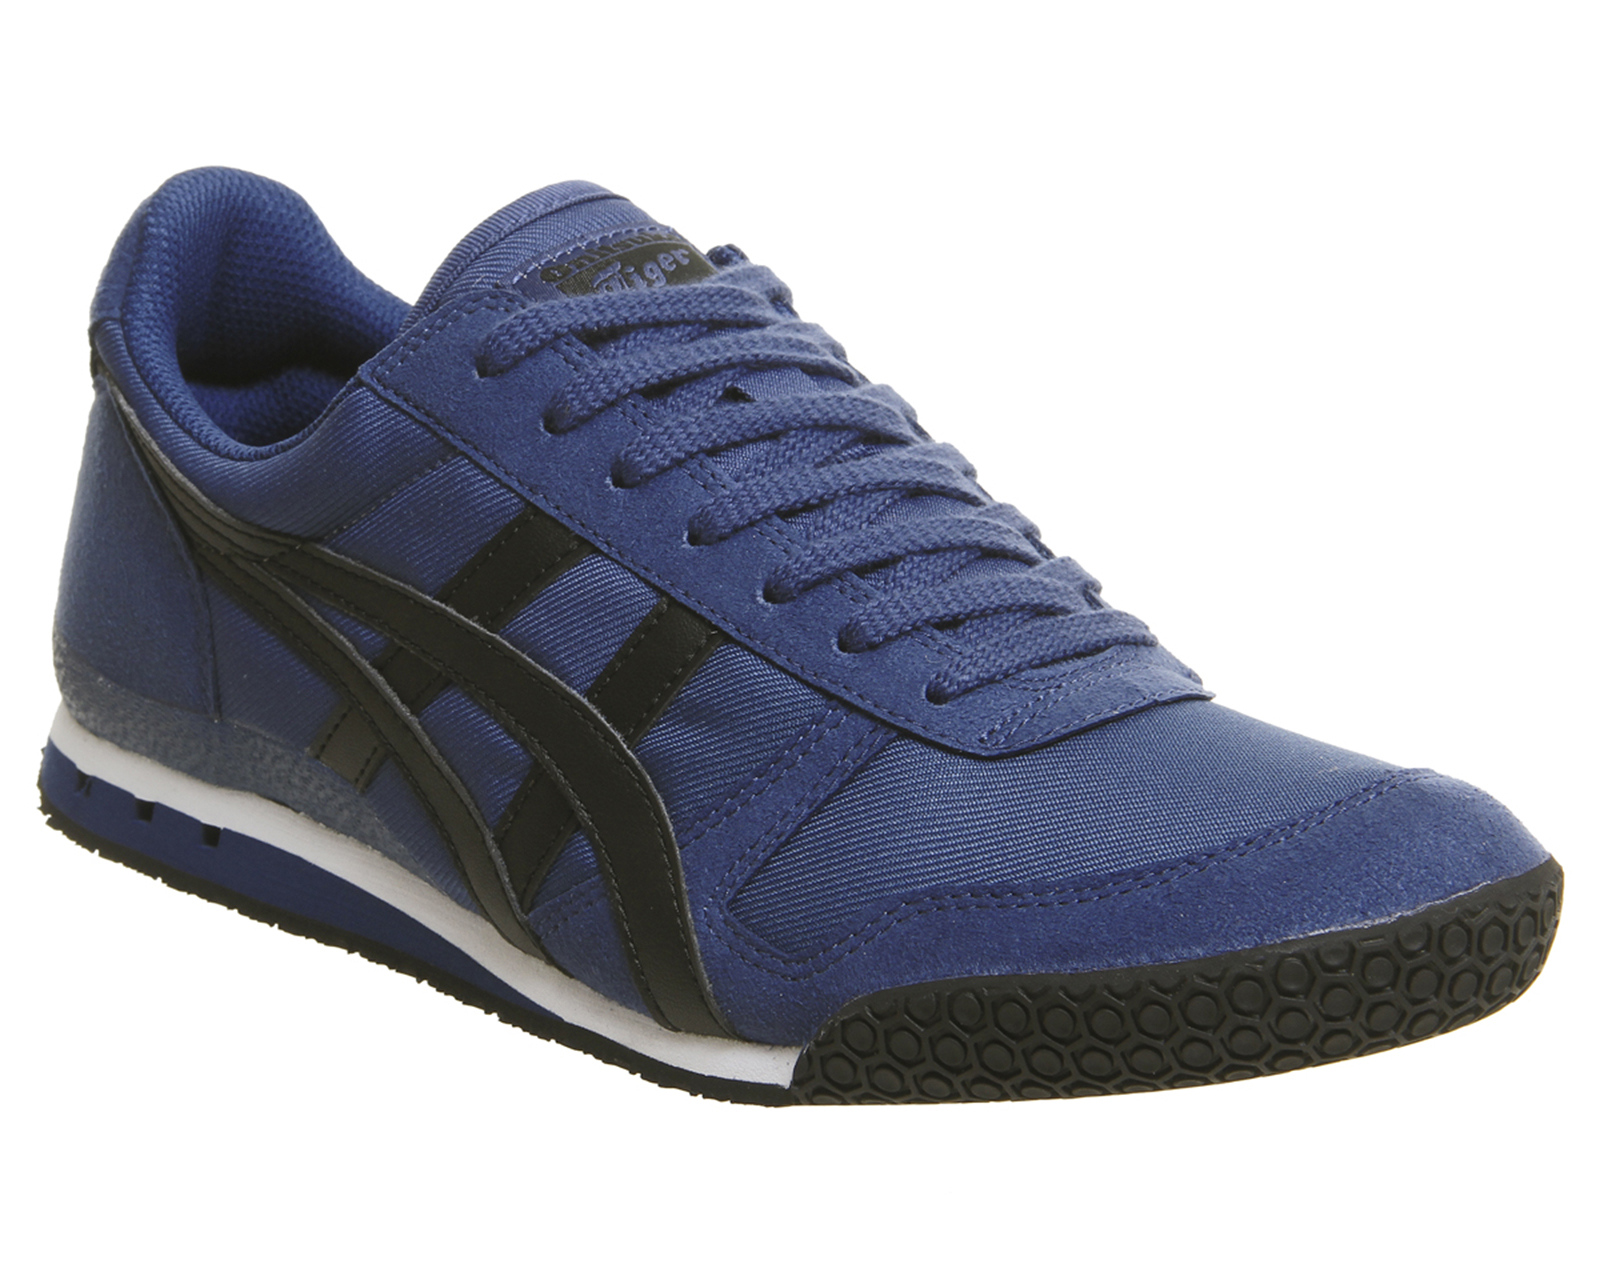 new arrival 43fb9 1f180 Details about Onitsuka Tiger Ultimate 81 Trainers Midnight Blue Black  Trainers Shoes